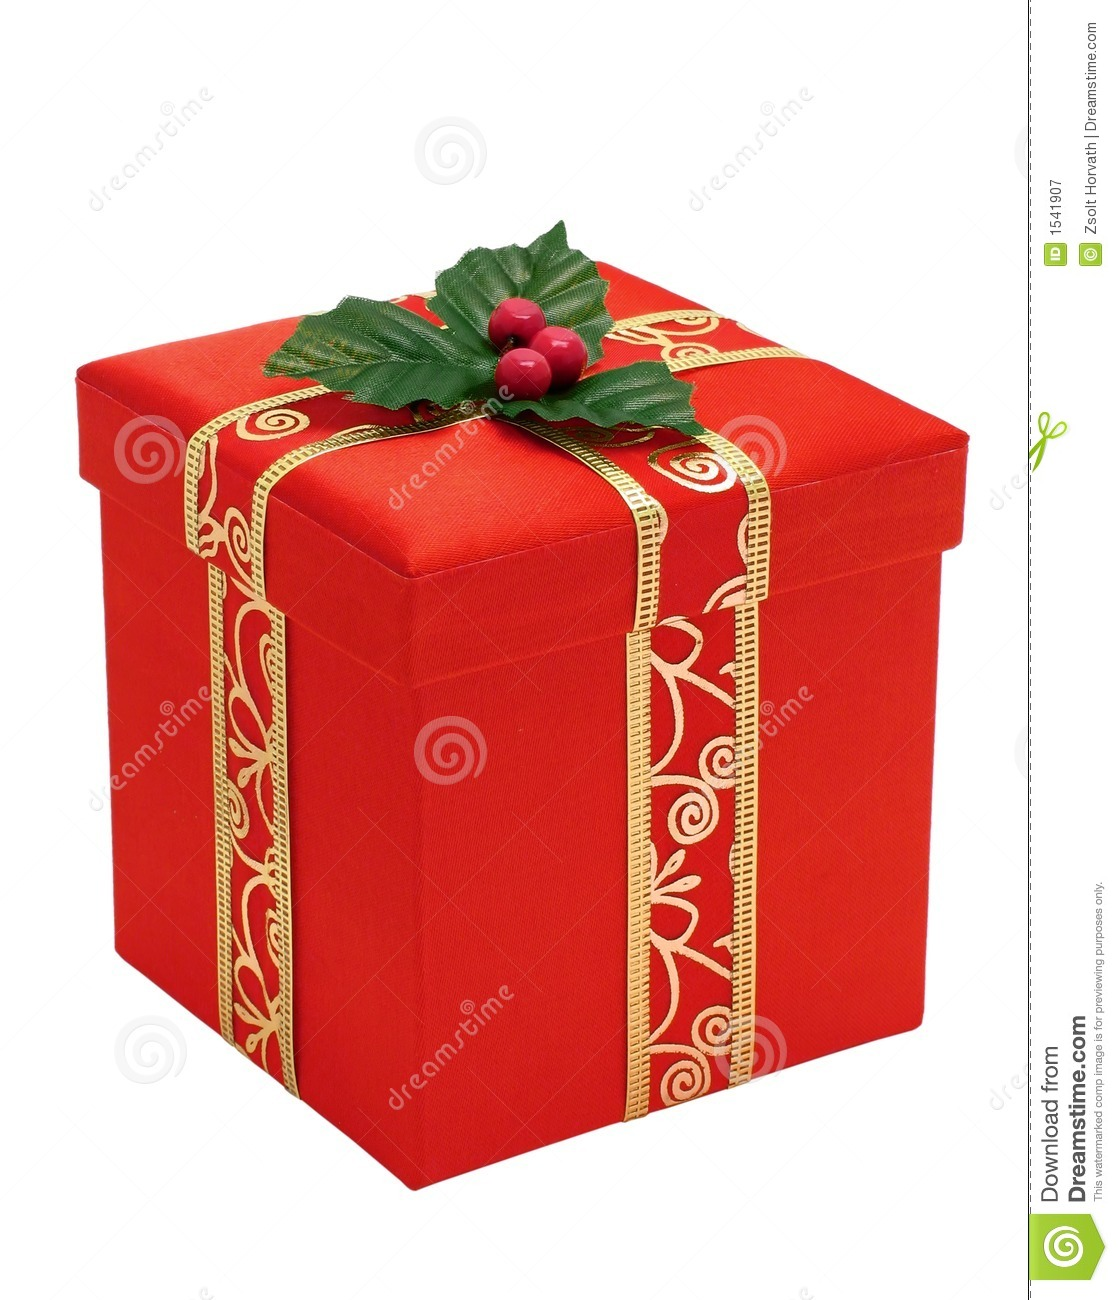 Red Christmas Gift Box With Gold Ribbon Stock Image - Image of ...